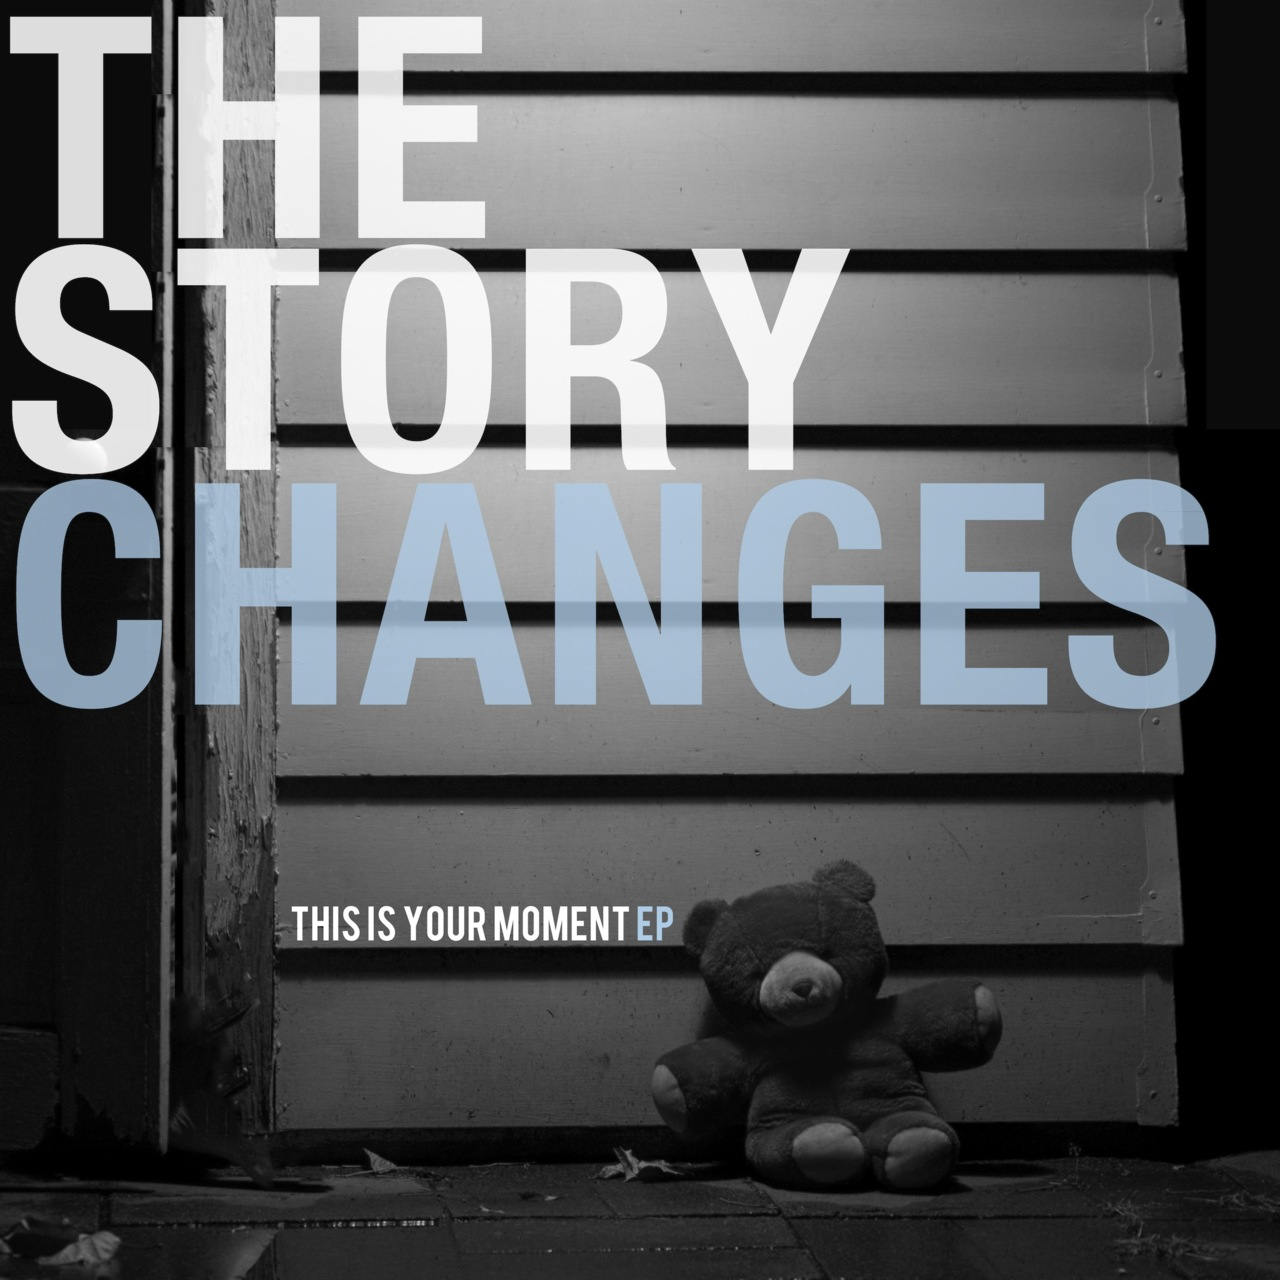 "A great review from UK on THE STORY CHANGES new EP. Pick up a copy HERE. Thanks to Venture Magazine for the digging the record. Article by: Danielle Tracy After the release of their split album, 'Analogies,' The Story Changes have continued to grow musically from all of their continuous touring since 2006.  The band now has a chance to bring something new to their repertoire to make them a band no one would soon forget. The 4 song EP,'This Is Your Moment' is only the beginning. The album begins with a haunting intro played on a piano in their lead track, ""Tidal Wave.""  Mark's commanding and strong vocal performance brings out the main focus of the song which is staying in the moment and not letting it go.  ""Back and forth I'm swaying into this tidal wave, the pressure's forming, it's building up."" The song is describing how your indecision is like a tidal wave and the longer you let it hang over you, the more pressure you will feel.  A catchy lead track, and the perfect way to start off the album.  Coming smoothly after the lead track is the song, ""How Long."" This song sticks out on the album as the more mellow song with a more uplifting meaning behind the song than we are used to from the traditional writing of the band.  The question that keeps popping up in the song is, how long are we supposed to wait for people to find what they are fighting for?  These words depict someone waiting around for you to find what you're fighting for because all we are doing is wasting time.  Everyone needs to know where they stand to be able to stand on their own two feet.  The way Mark and Poppy stay in sync throughout the song, gives it a hypnotic sound that will make this song an easy favorite. The next song on the album is, ""Nights Collide.""  A very strong, but mellow song that adds some catchy guitar riffs to make it the ""repeat"" song off the album.  This song definitely stands out as the band's rock anthem.  The way it was written will have many people relating to its honest lyrics about standing up and sticking together.  ""We don't stand a chance if we don't mend the cycle.""  This line of lyrics is repeated throughout, allowing people to understand that if we don't change our ways of accepting people for who they are, this same process will keep going on forever.  No matter how different we may all be, we can stand together for the same purpose. Lastly, The Story Changes final song is a cover of Nirvana's song, ""Breed.""  The band remained true to the spirit of Nirvana, but kept their sound alive.  They calmed the sound down more from the original heavy guitar and drum sound we are used to hearing from Nirvana.  With their own sounds mixed in, The Story Changes made a classic song their own.  A great choice of song for the band to cover, fitting in to their genre well. As a whole, the EP is a great achievement for the band.  Being a low key band with only two members to contribute to the musical aspect, their sound is as big as a standard rock band would be. Their lyrics have gotten lighter and more driven to mean something greater than just the dark side of life. With a lighter look on life, The Story Changes is looking at a brighter future.  Overall rating: 9/10"